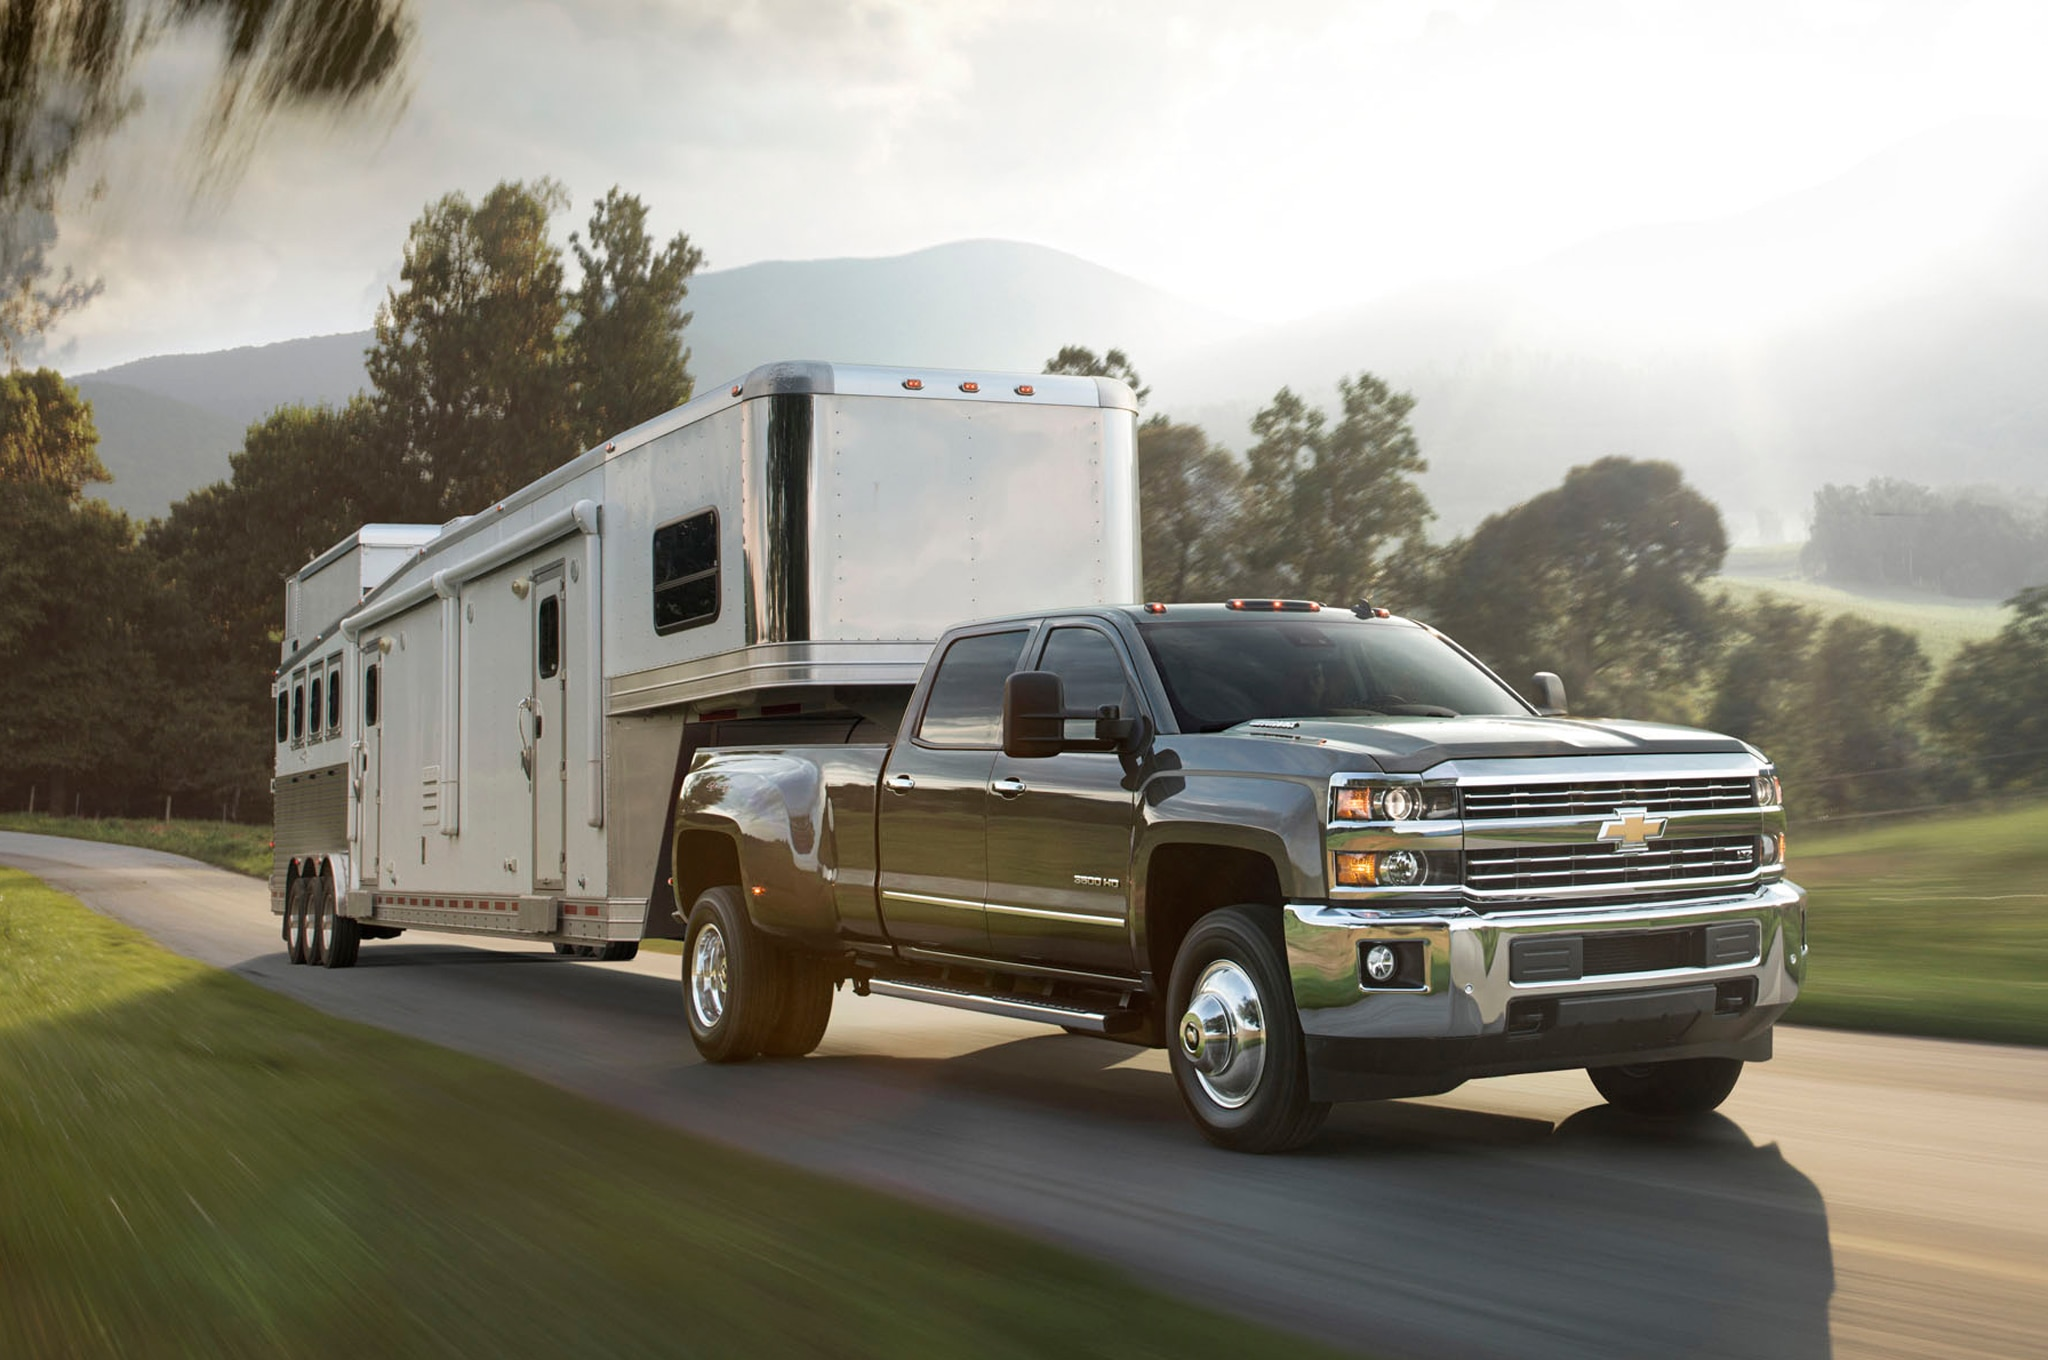 2015 Chevrolet Silverado 3500HD front view towing